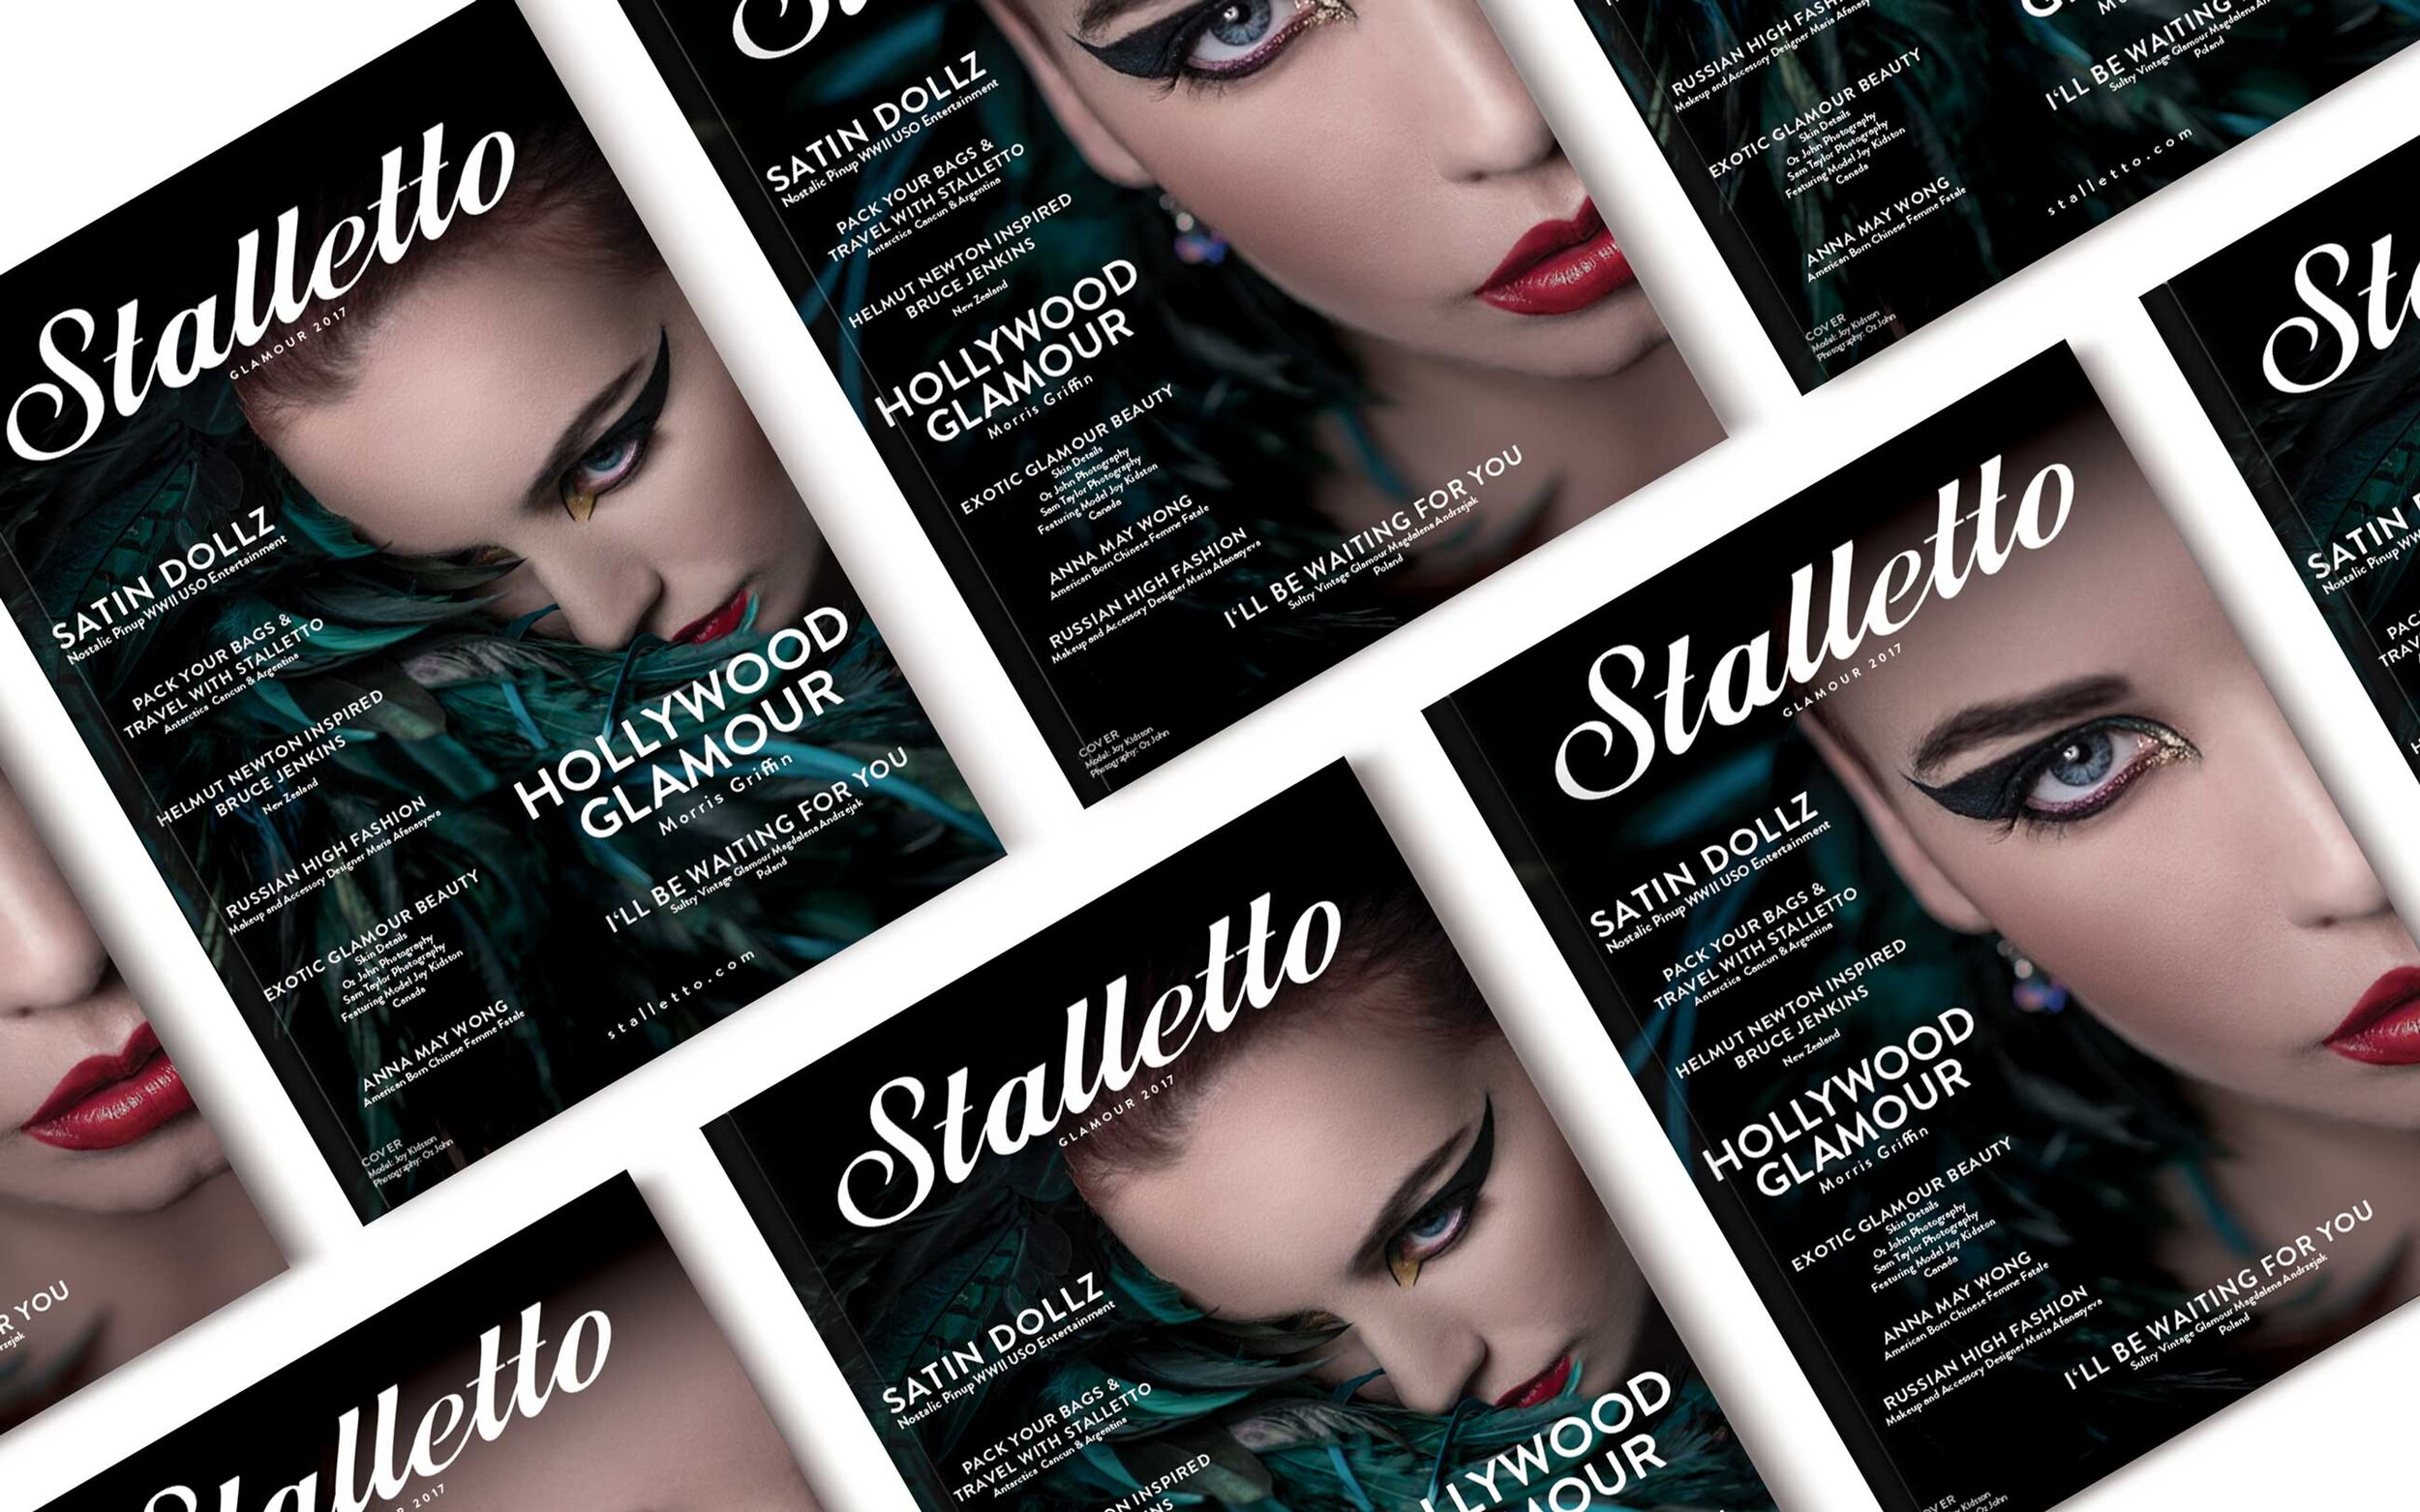 stalletto-covers.jpg